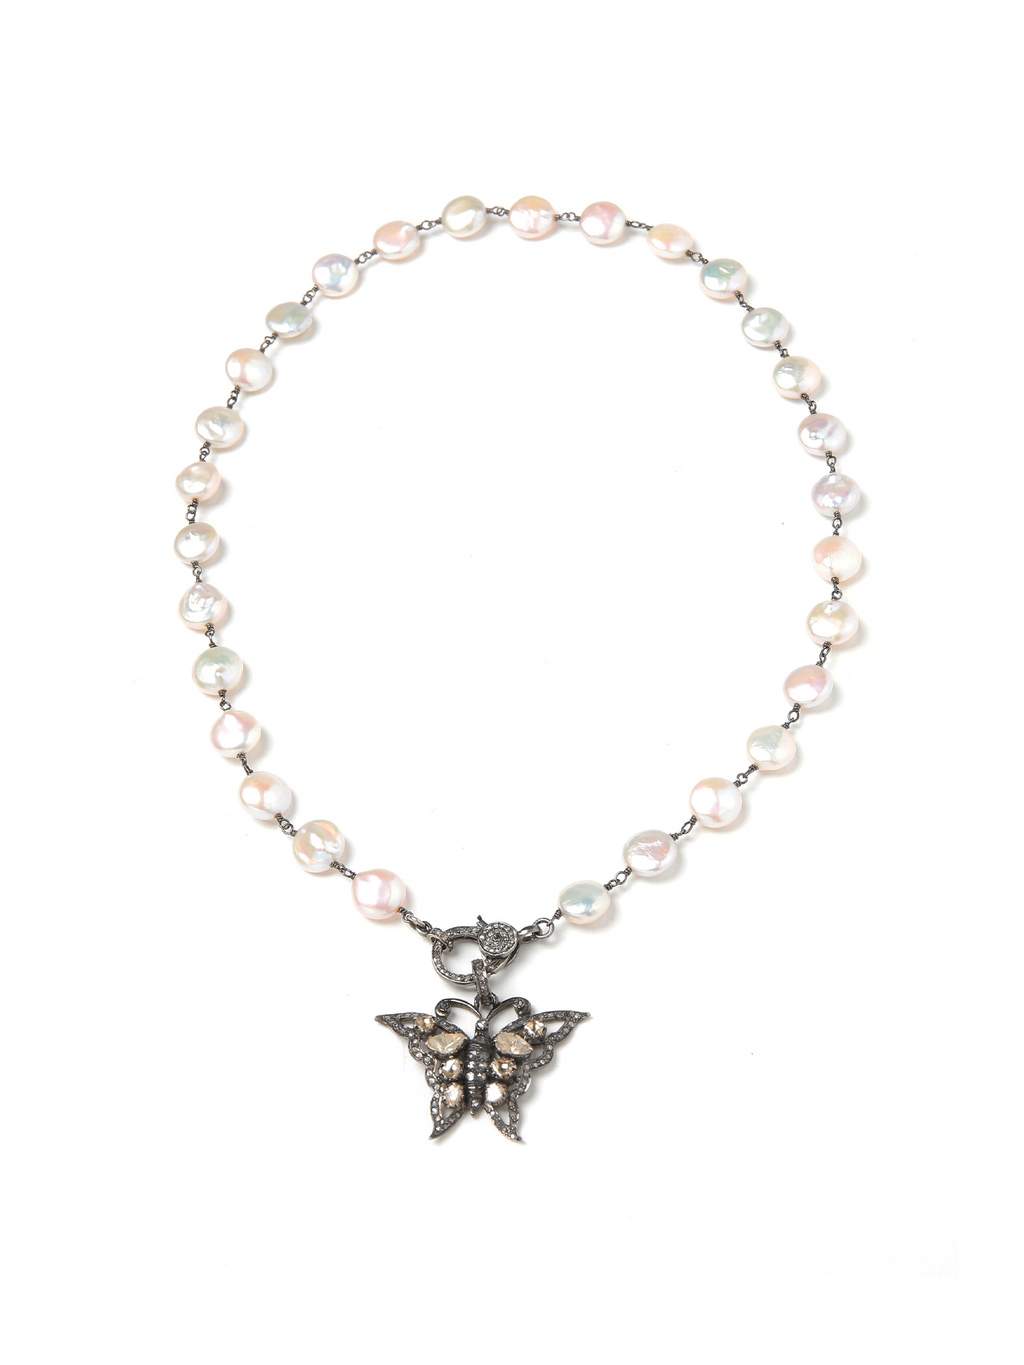 Margo Morrison White Freshwater Coin Pearl Necklace with Diamond Clasp